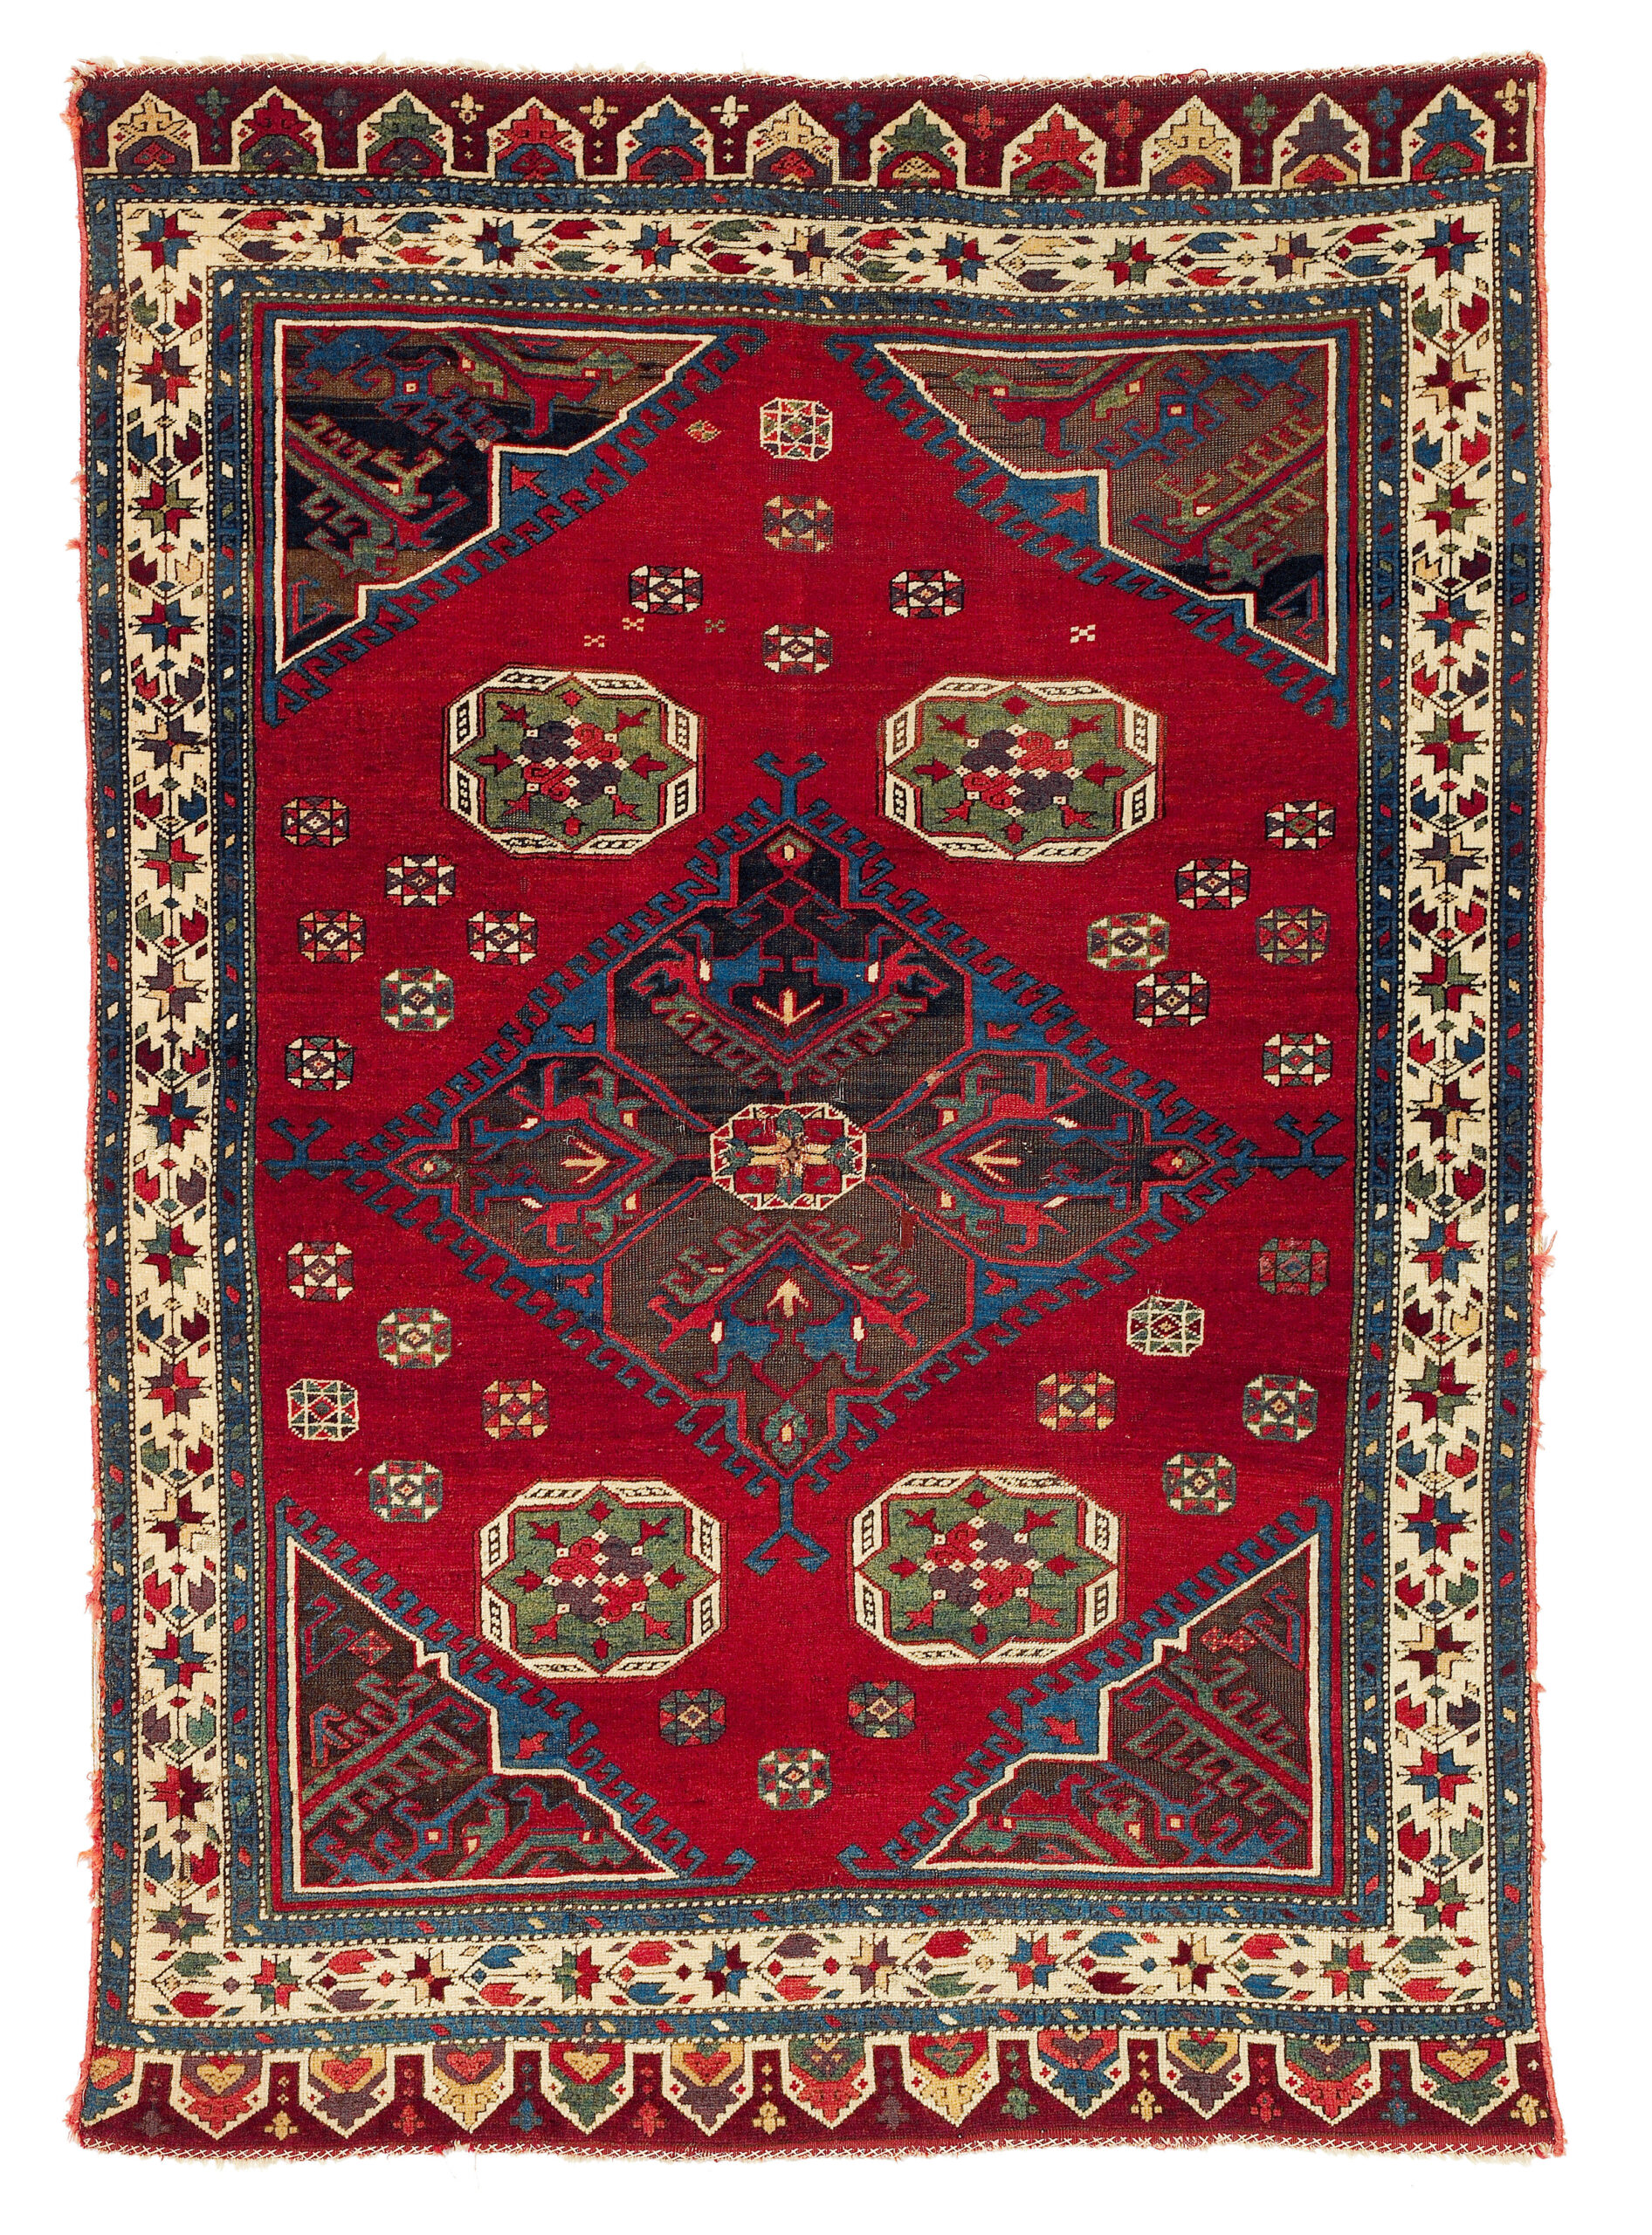 17-18th Century Konya workshop carpet, Central Anatolia